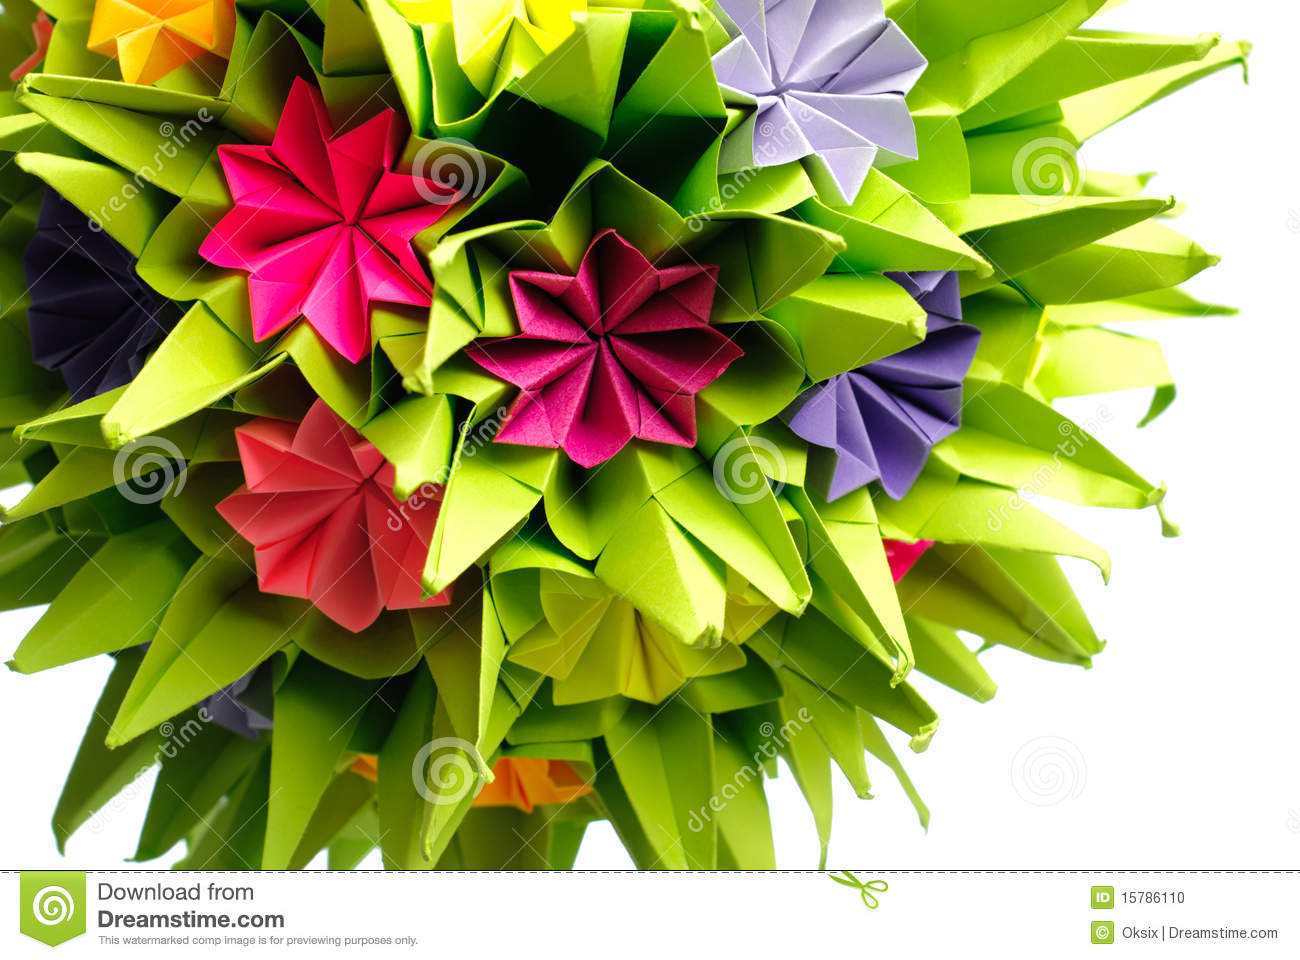 How to Make a Kusudama Ball: 12 Steps (with Pictures) - wikiHow | 960x1300